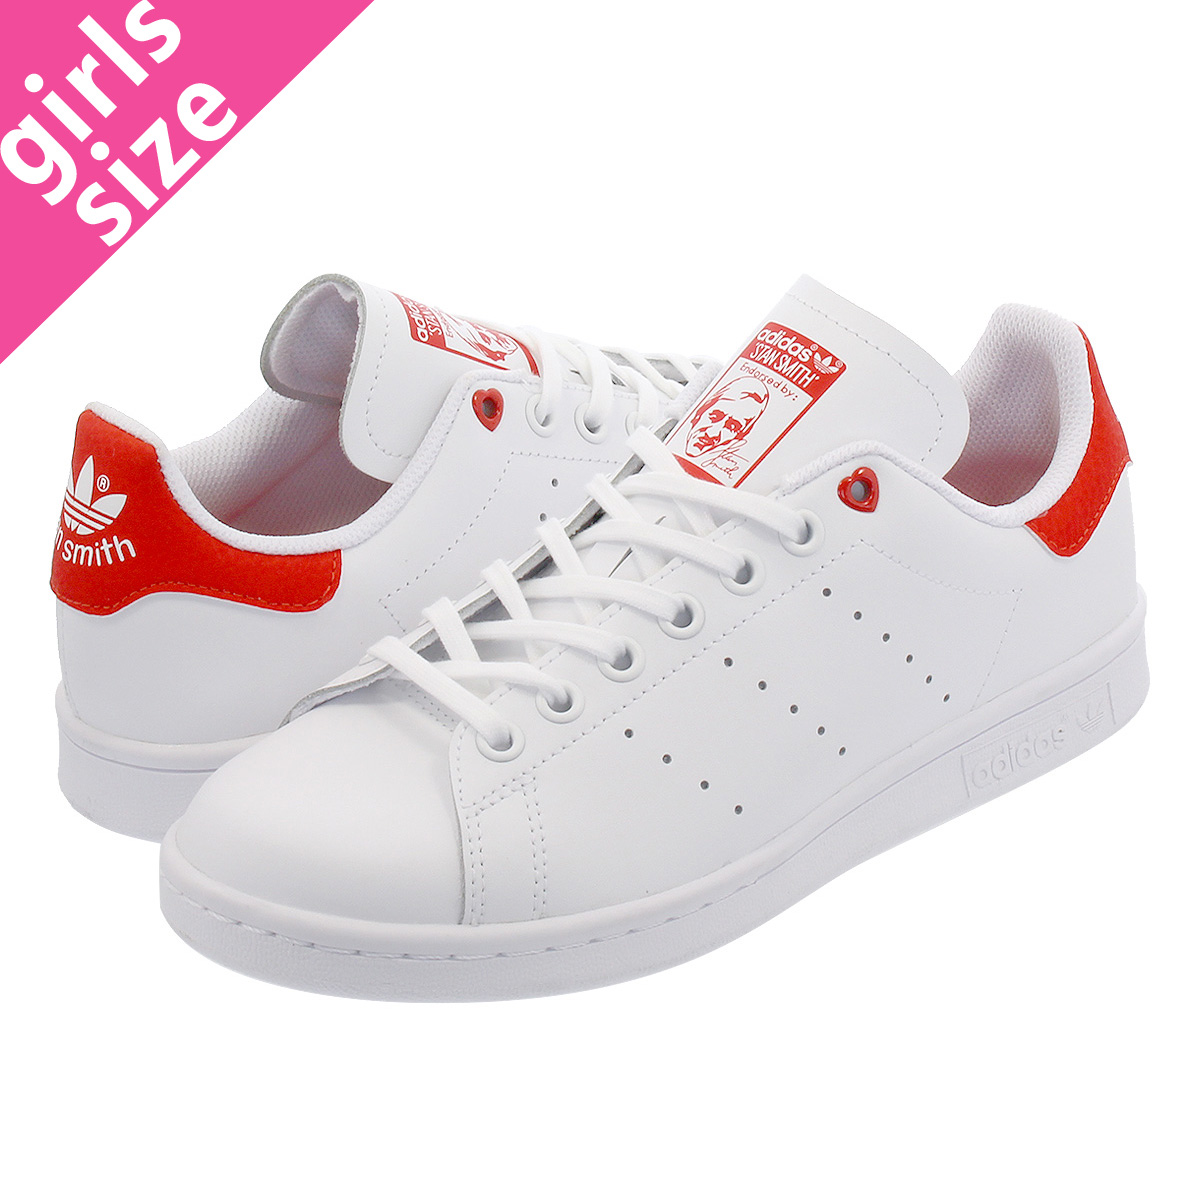 los angeles new york big discount adidas STAN SMITH J Adidas Stan Smith J RUNNING WHITE/WHITE/ACTIVE RED  g27631